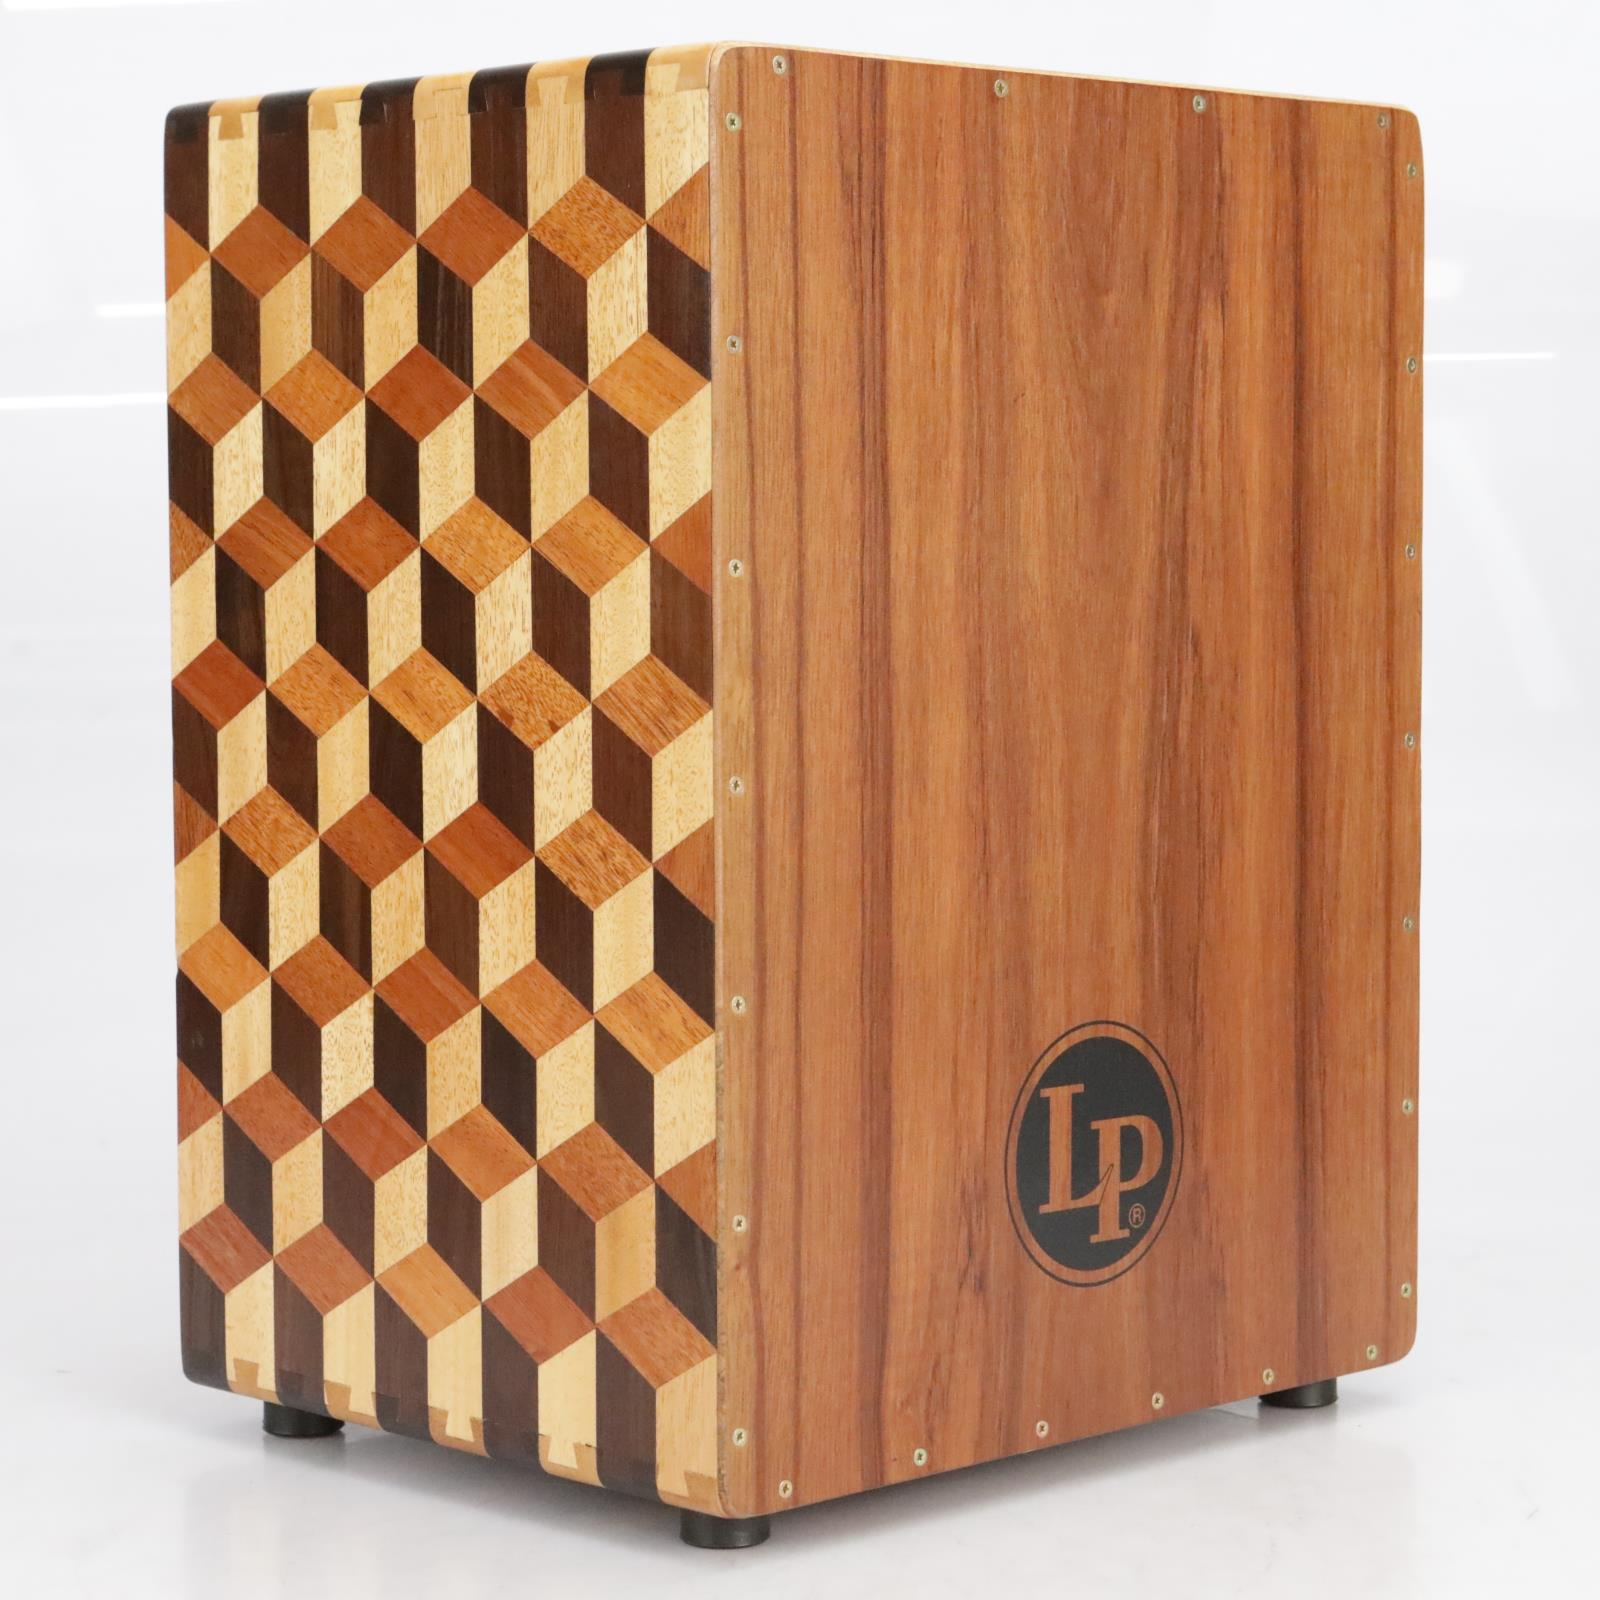 LP LP1423 3D Cube String Cajon Hand Crafted Percussion Drum w/ Gig Bag #41165